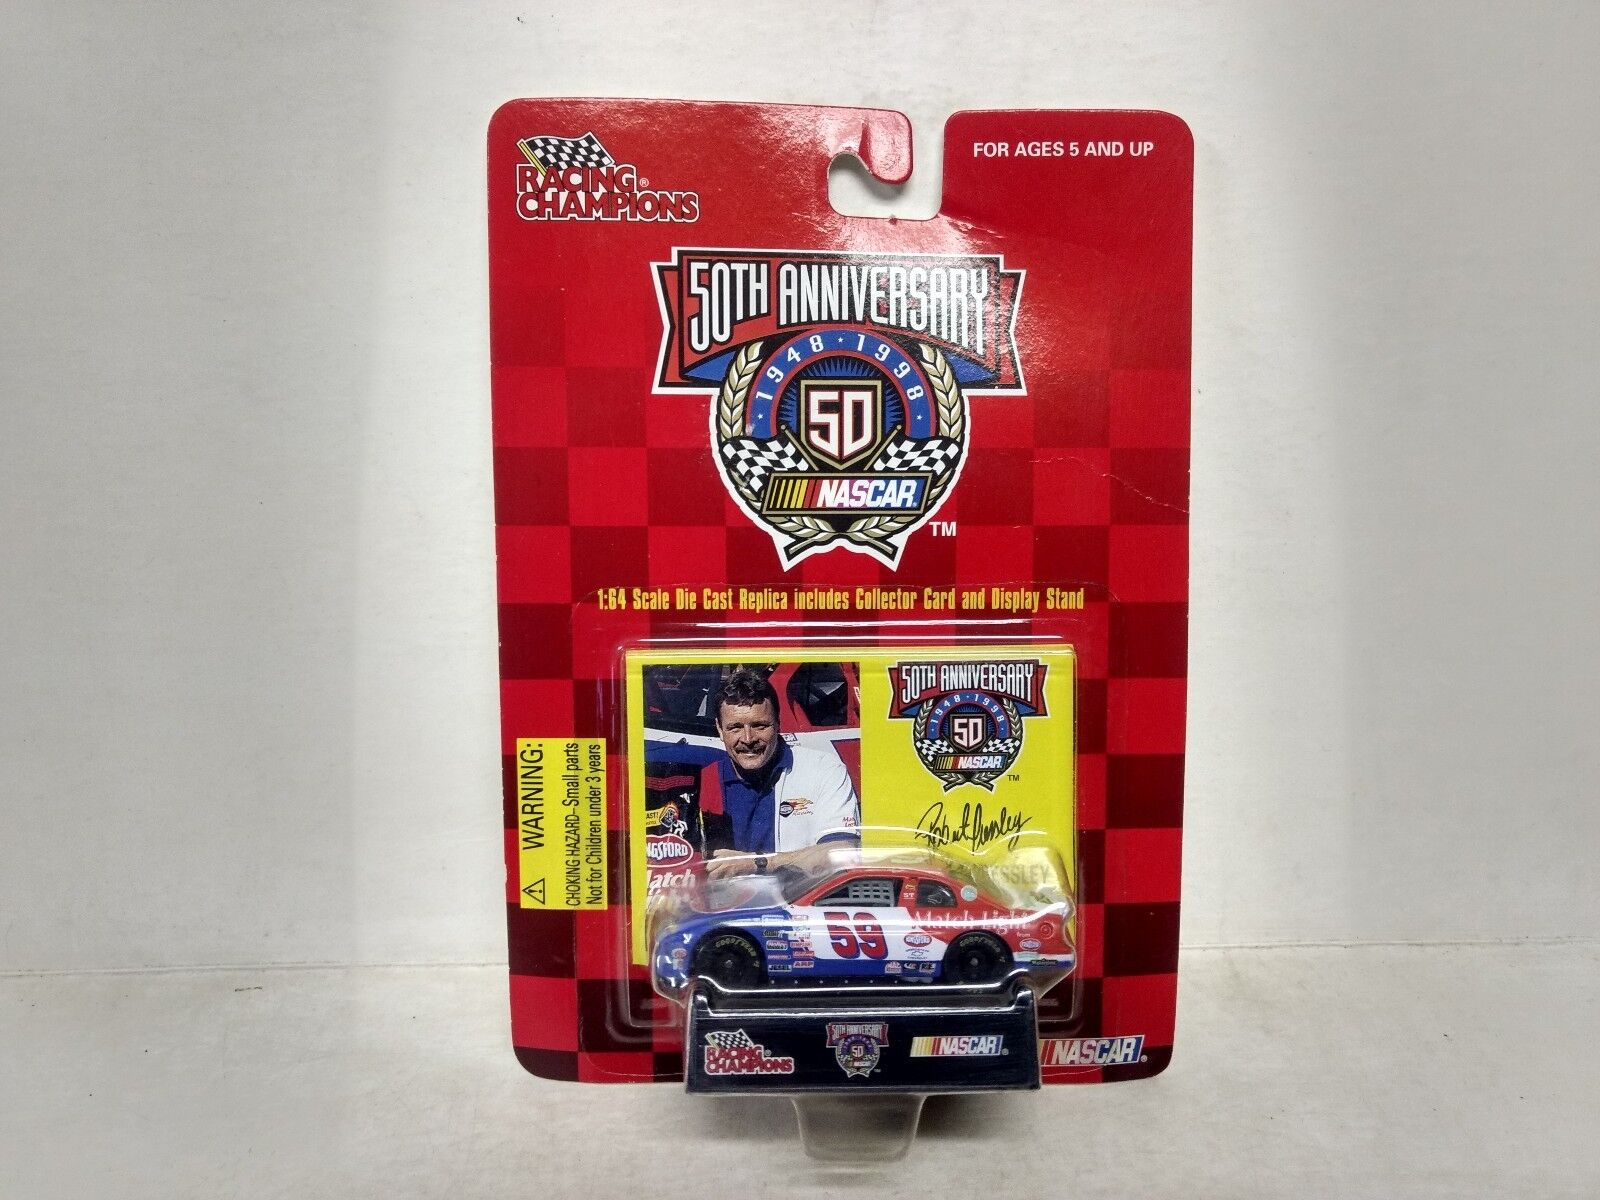 Nascar 50th Anniversario Robert Pressley 1 64 Scala Diecast mb26